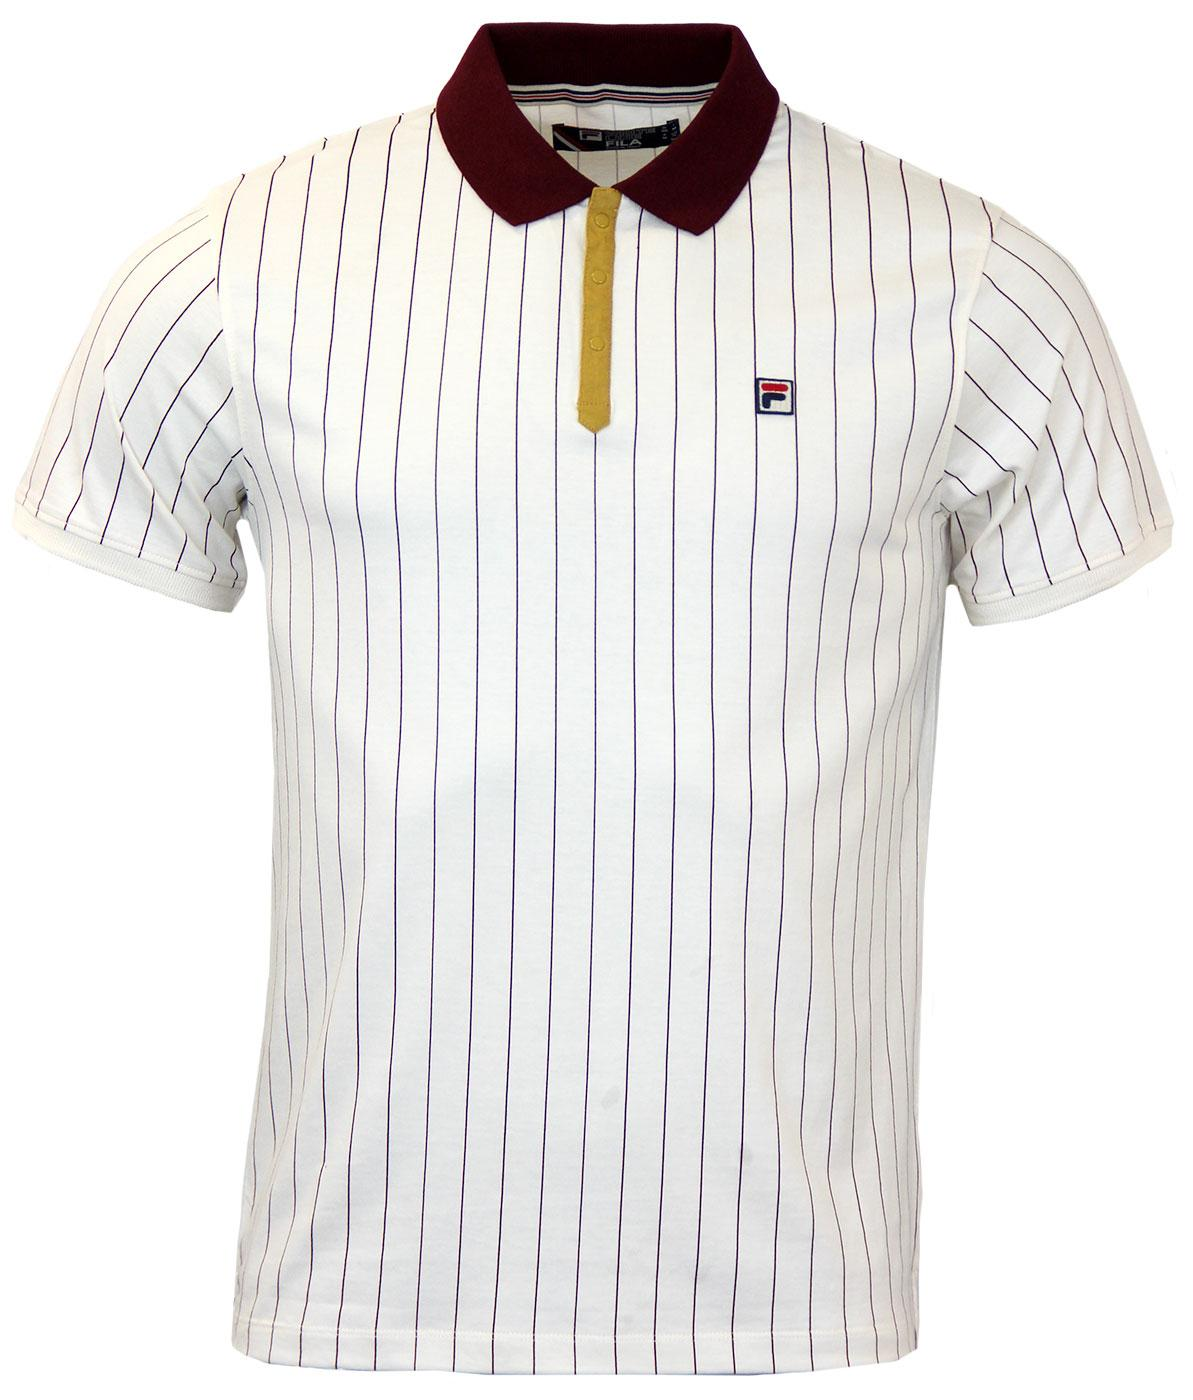 BB1 Borg Polo FILA VINTAGE Retro 70s Polo Top GDP